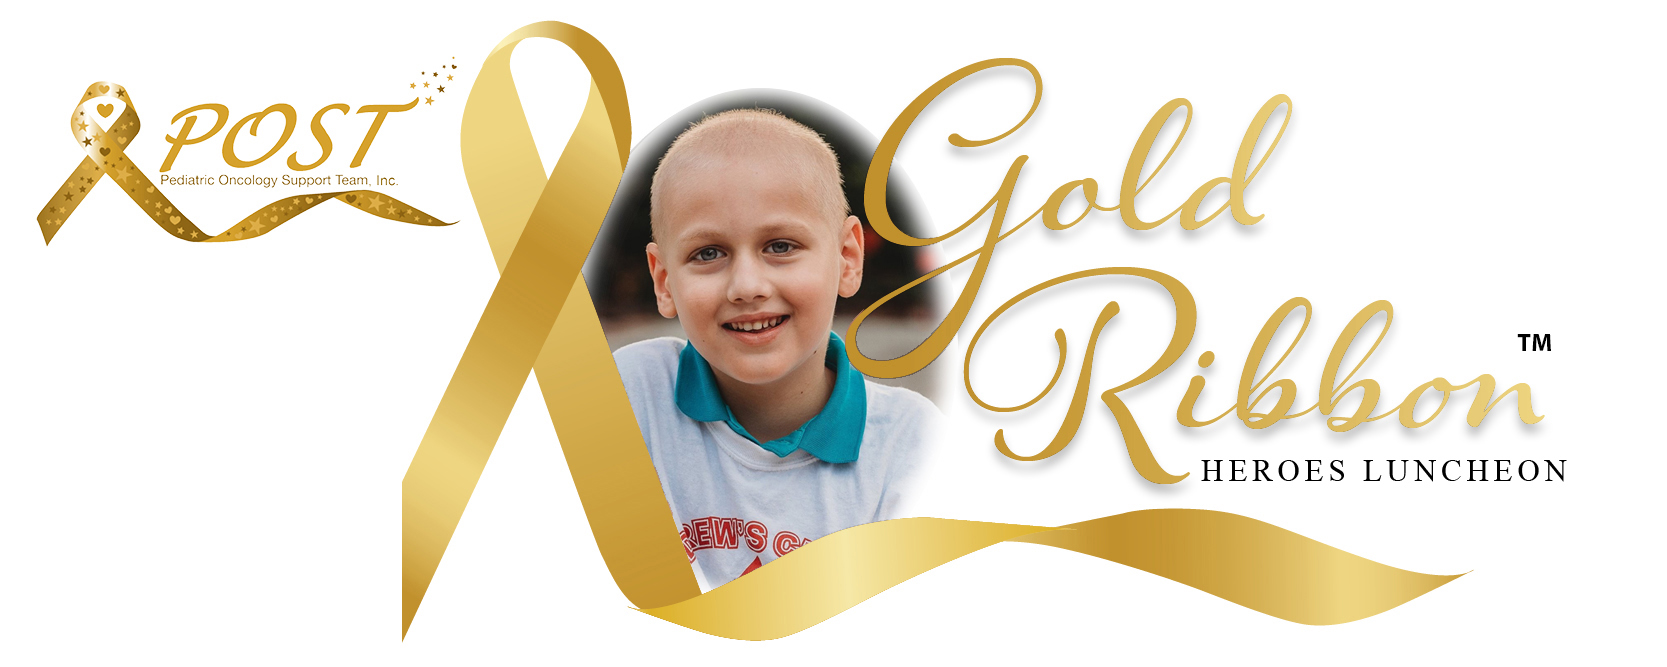 2018 Gold Ribbon Heroes Luncheon